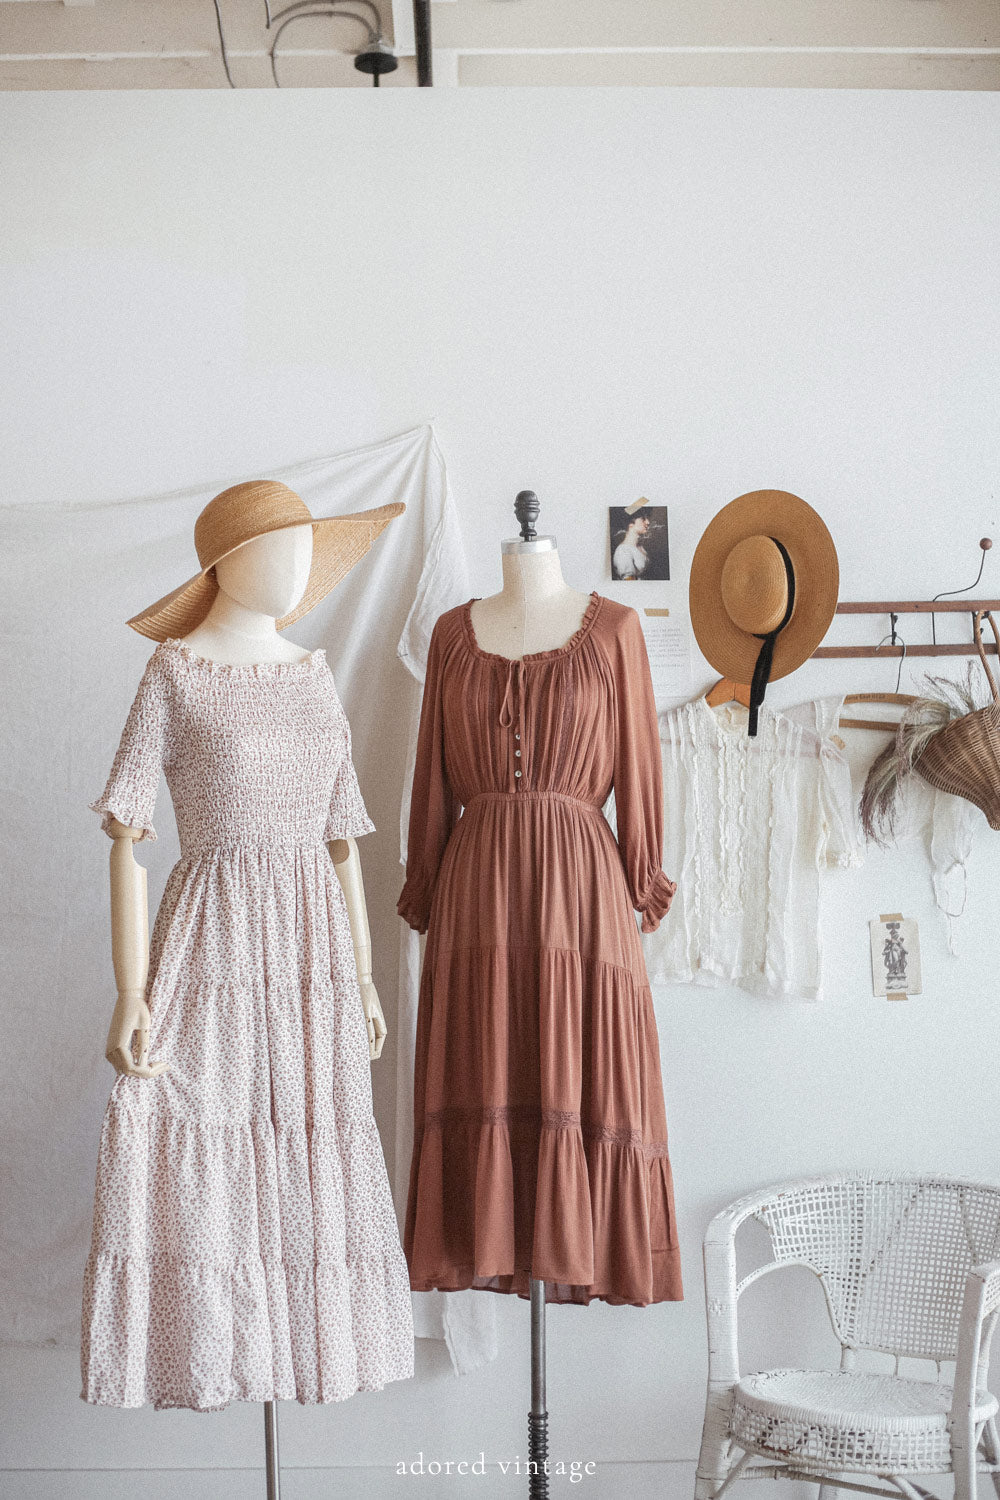 Romantic, Feminine, Vintage Inspired Clothing from Adored Vintage / Women's Clothing Boutique